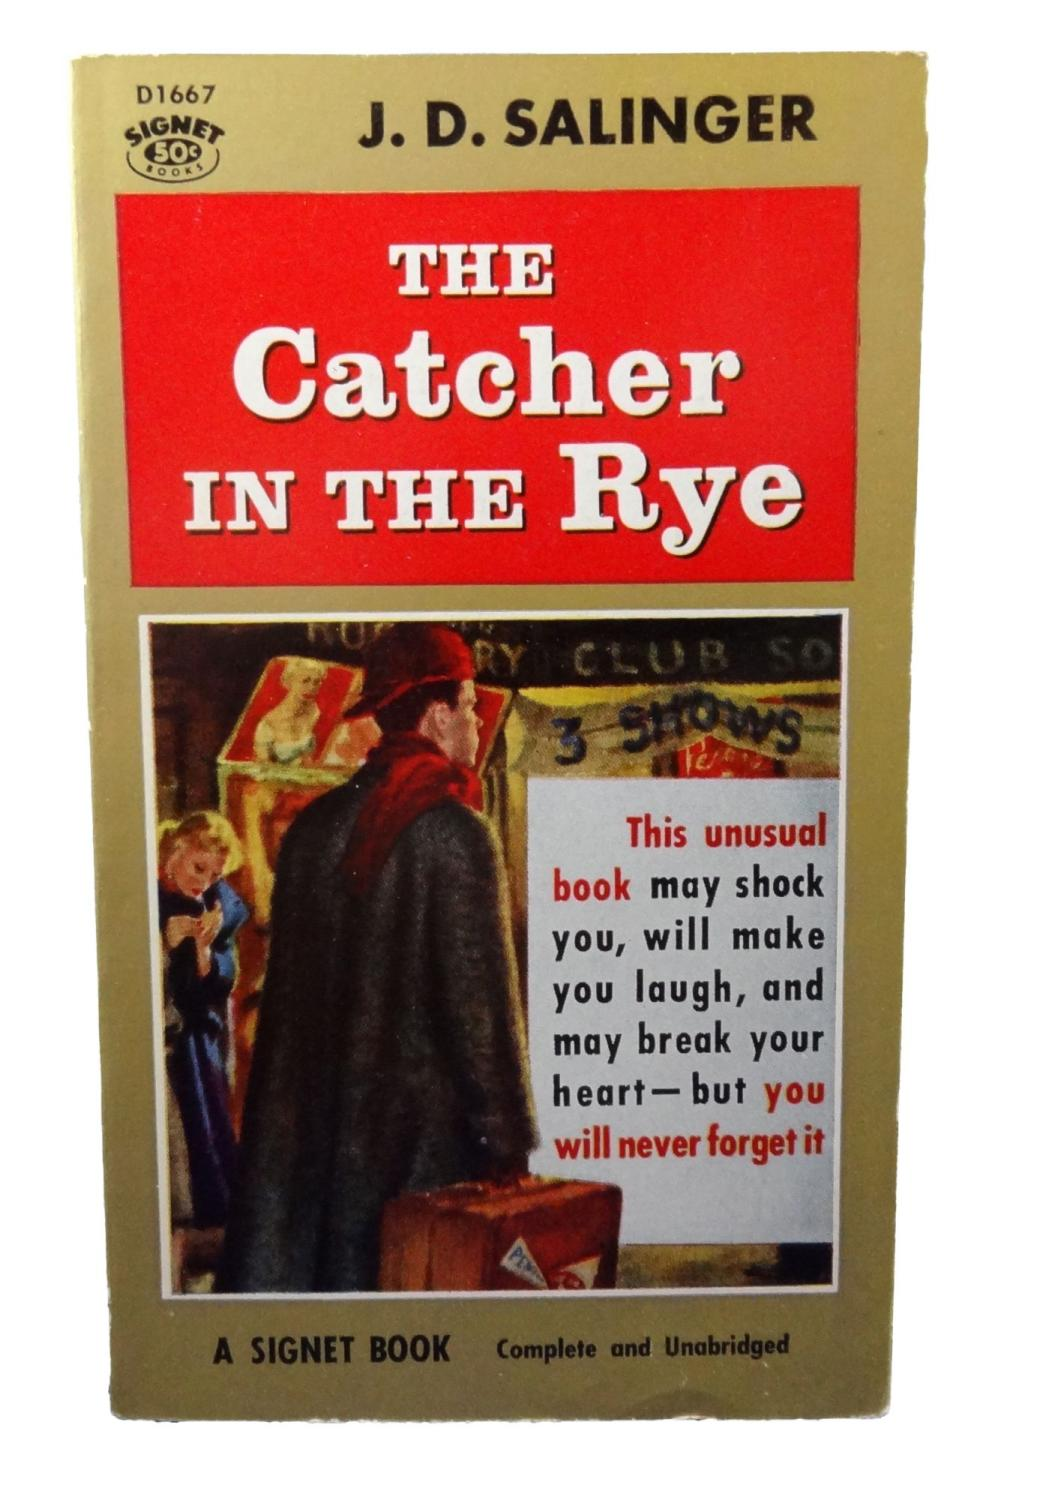 analyzing the symbolism exhibited in jd salingers the catcher in the rye